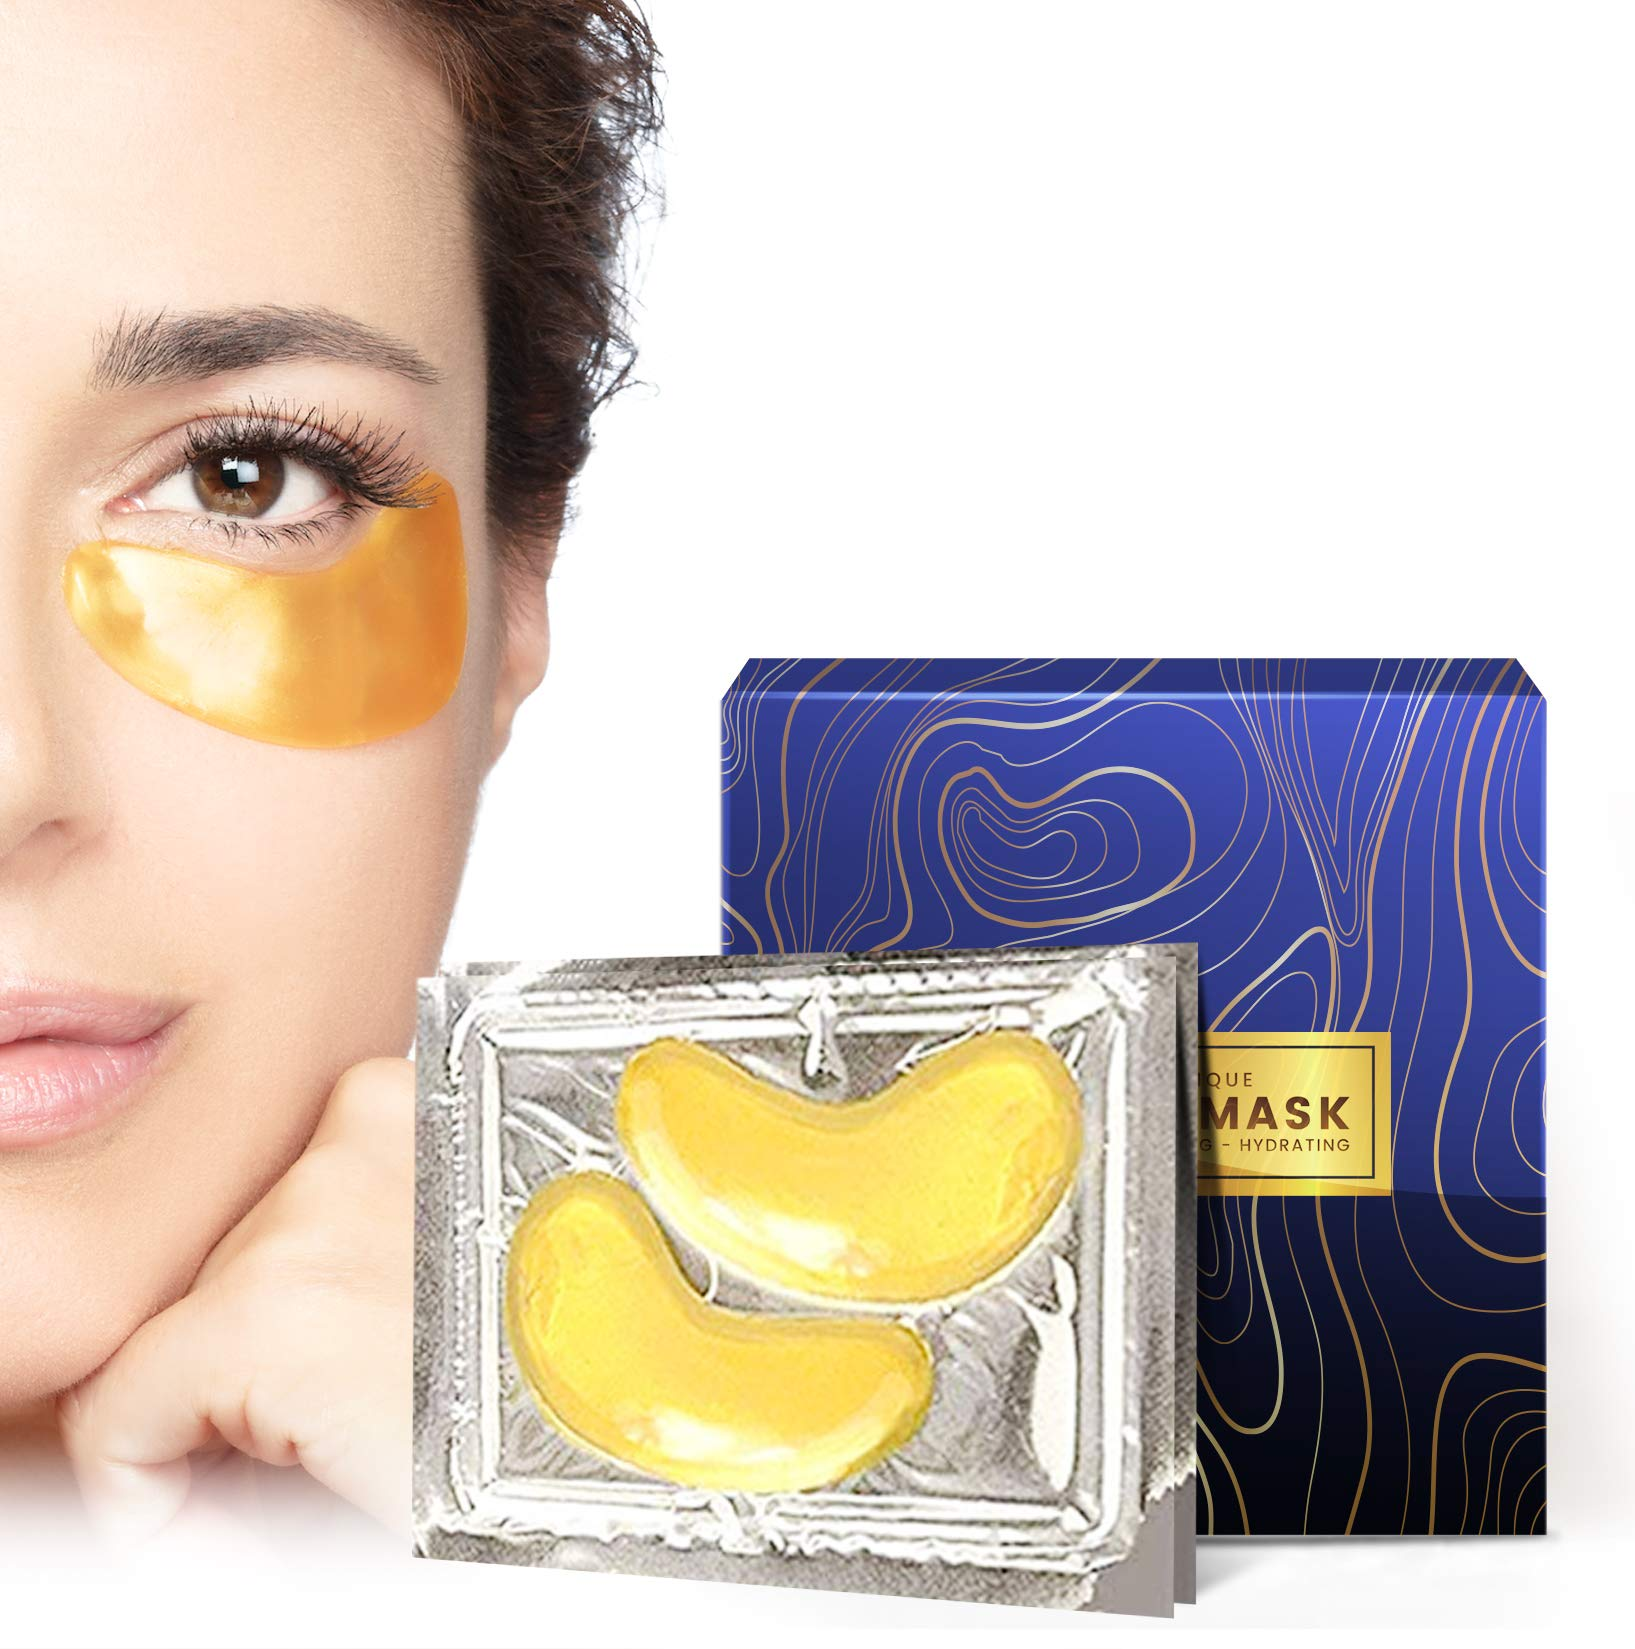 24K Gold Collagen Under Eye Patches - Dark Circles Eye Bags Puffy Eyes Treatment Mask - USA Technology Formula Upgraded Pure Natural Ingredients Extract - 15 Pairs by roselynboutique